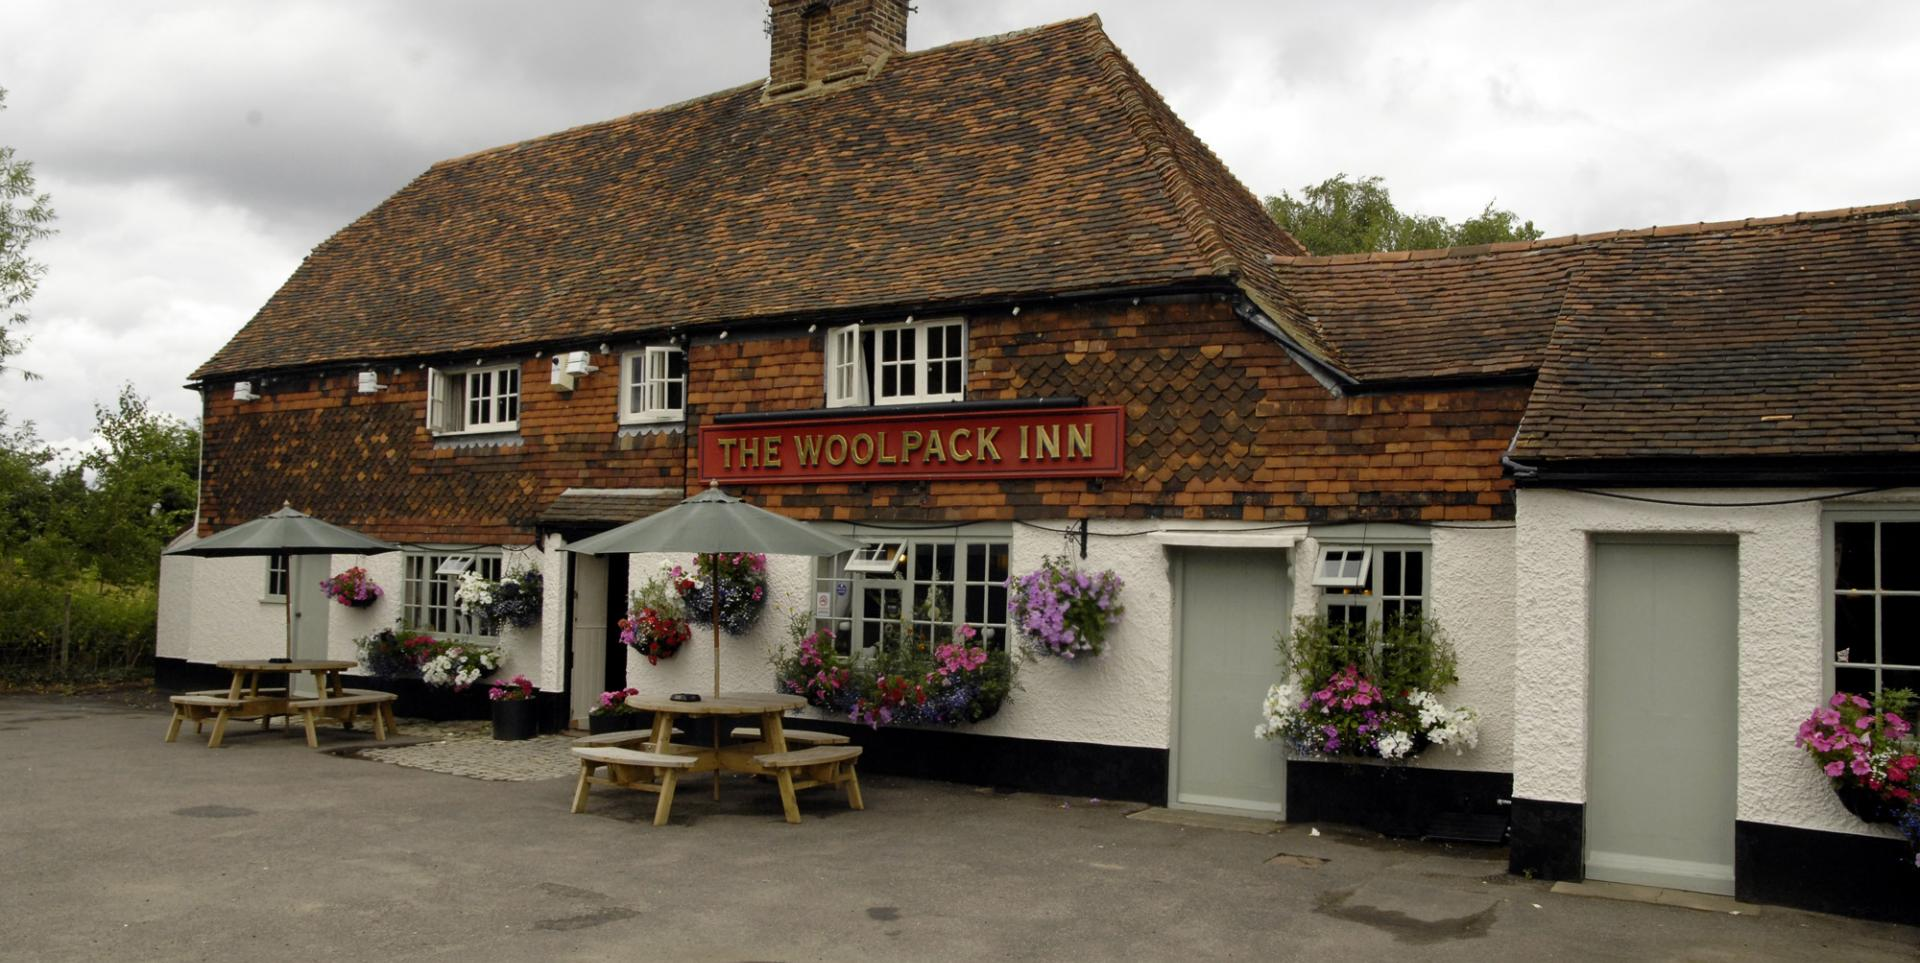 The Woolpack Inn Yalding